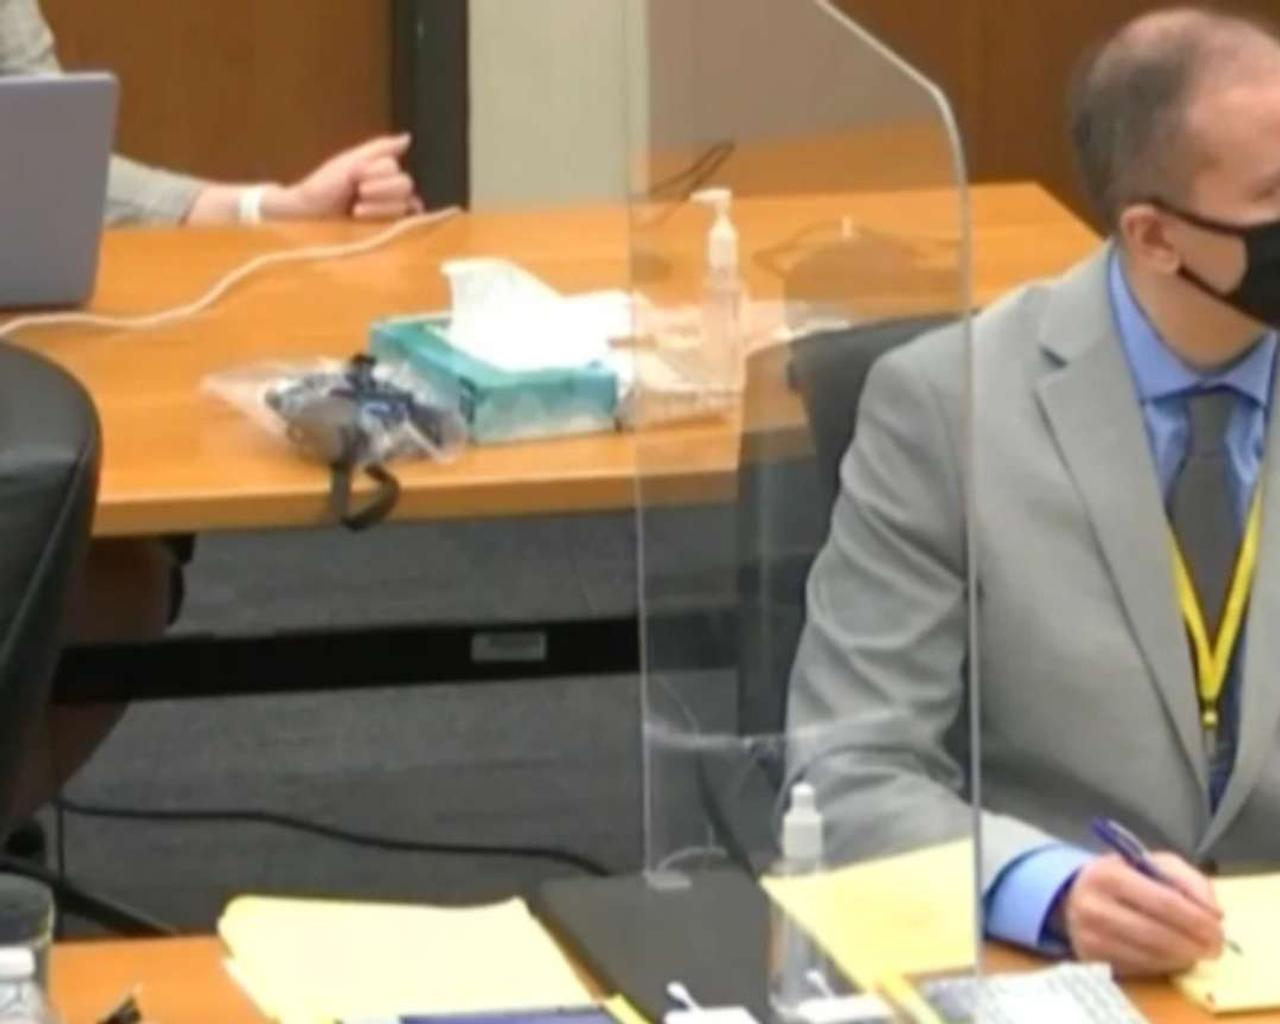 Witness reports seeing George Floyd 'slowly disappear' as testimony begins in Derek Chauvin's murder trial.